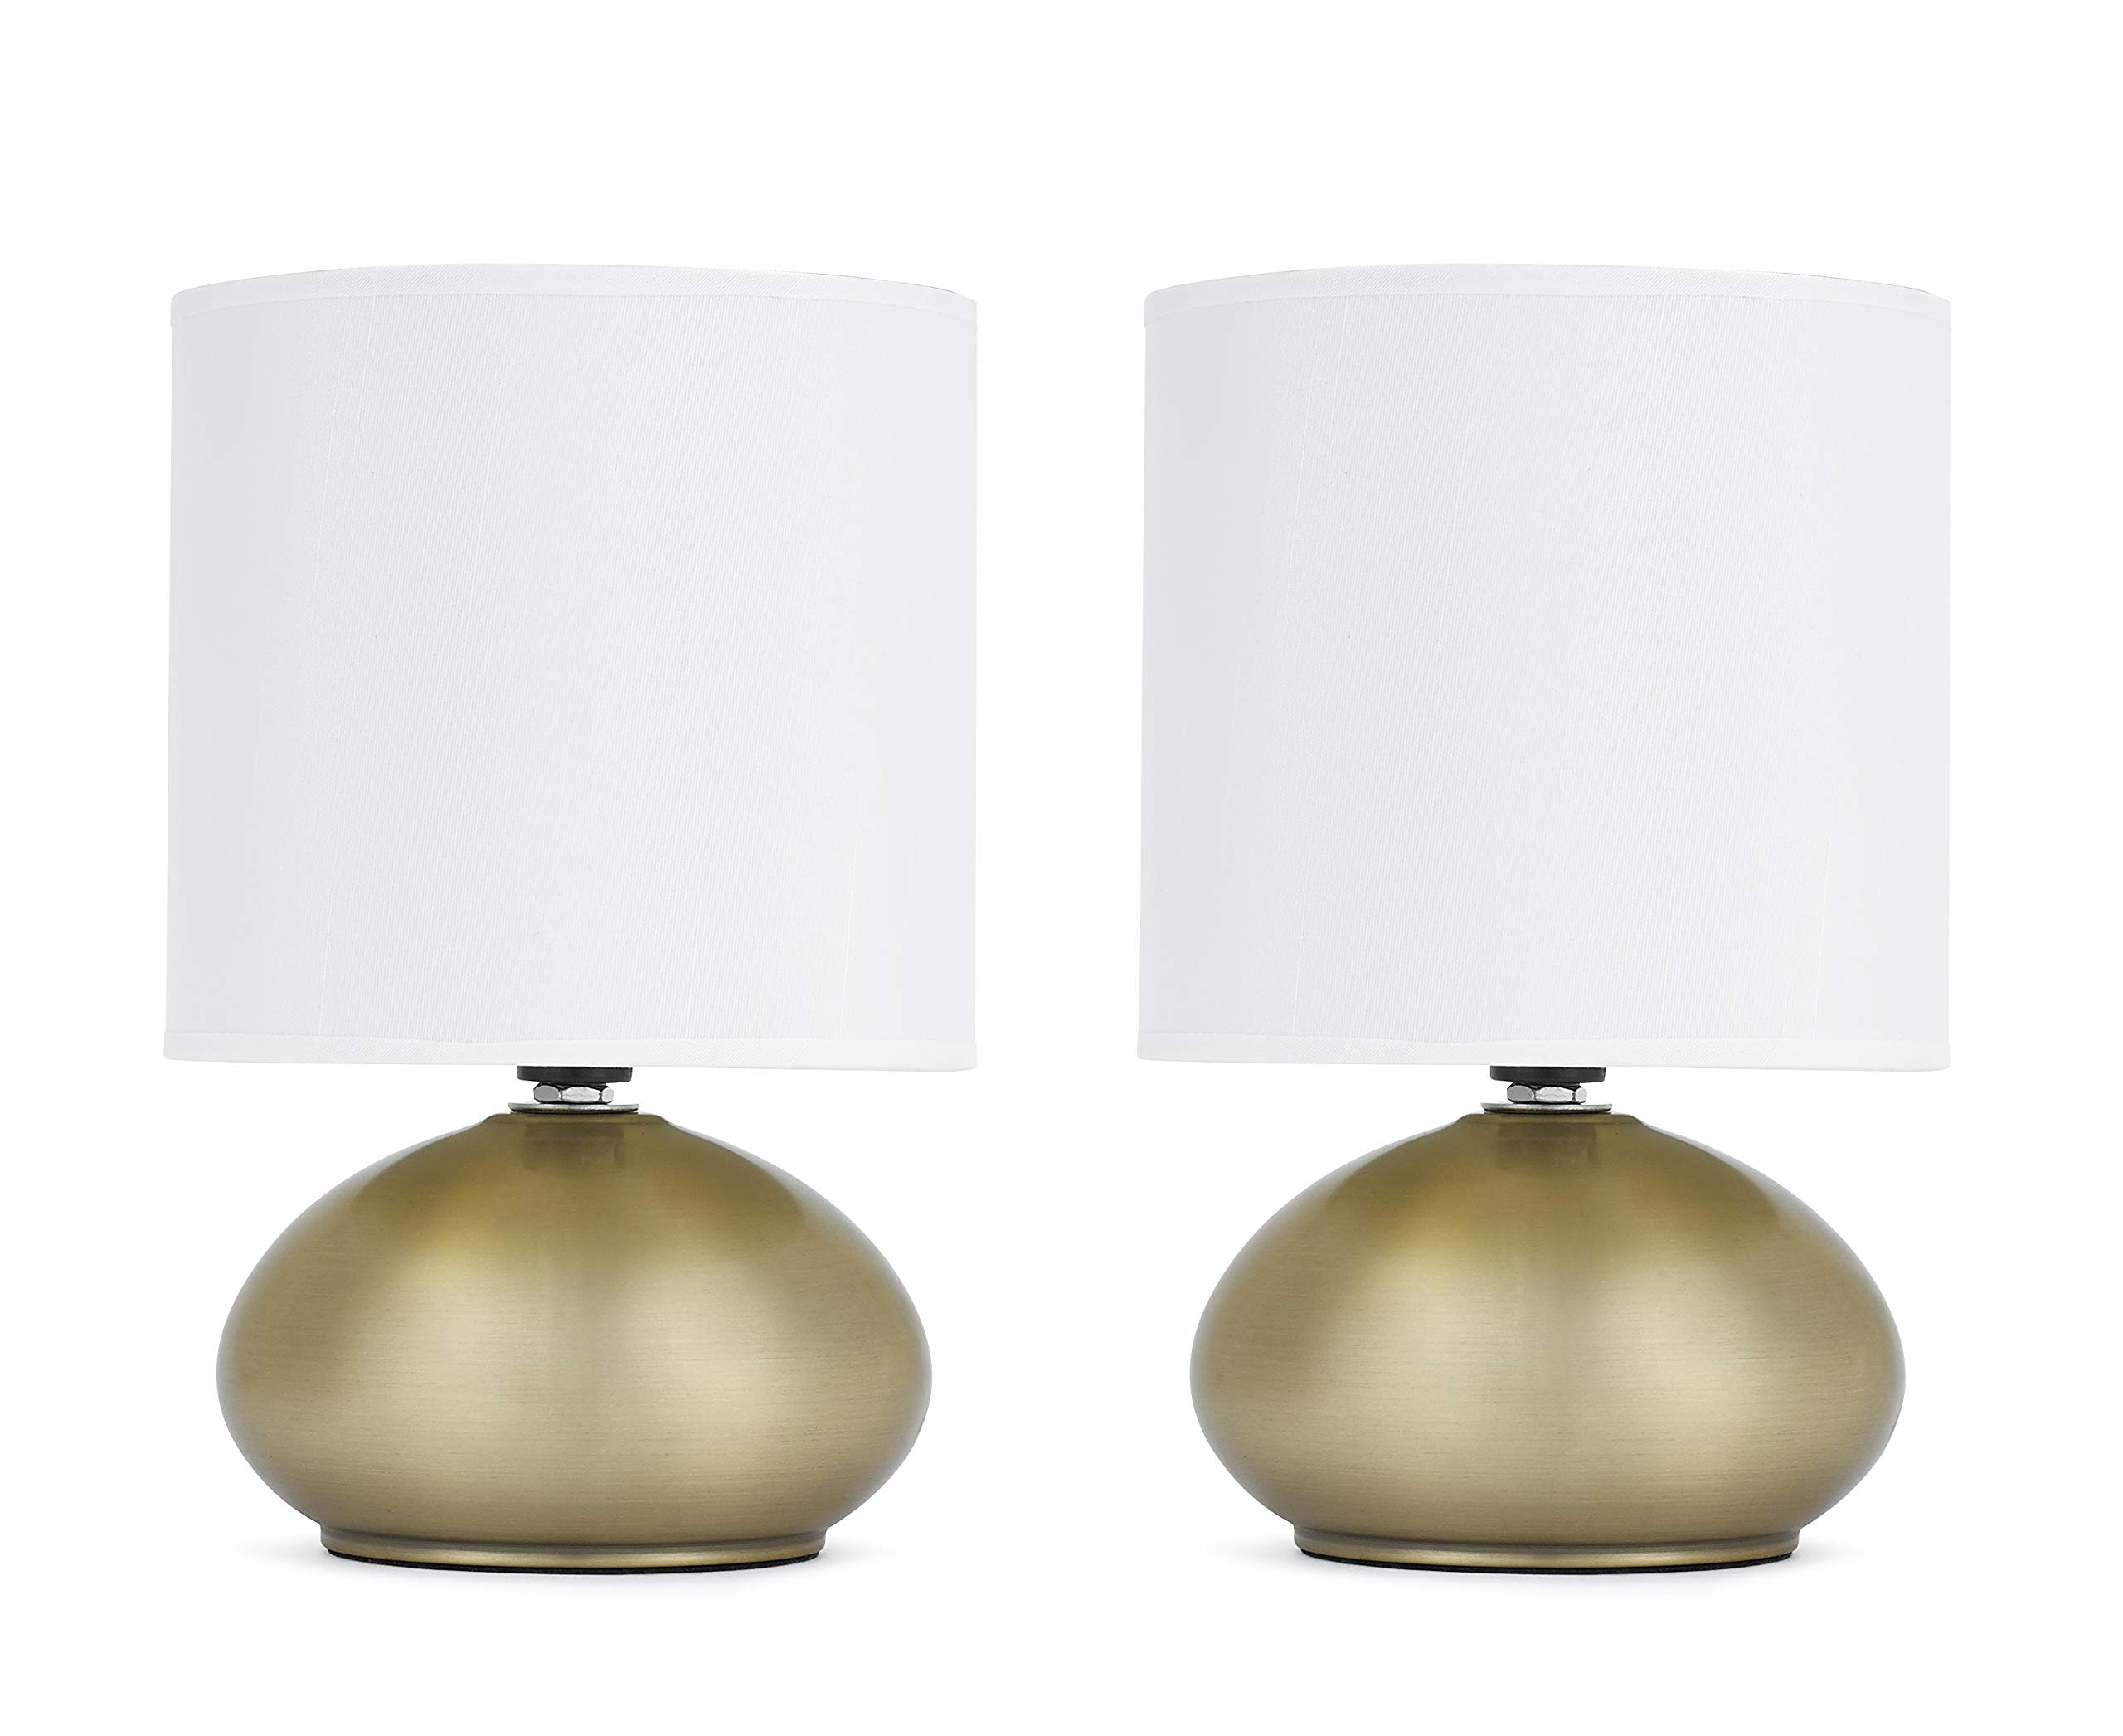 Catalina Lighting 18581-001 Caden 2-Pack Mini Metal Touch Accent Lamps with Linen Drum Shades, 6.0'' x 6.0'' x 9.25'', Brass